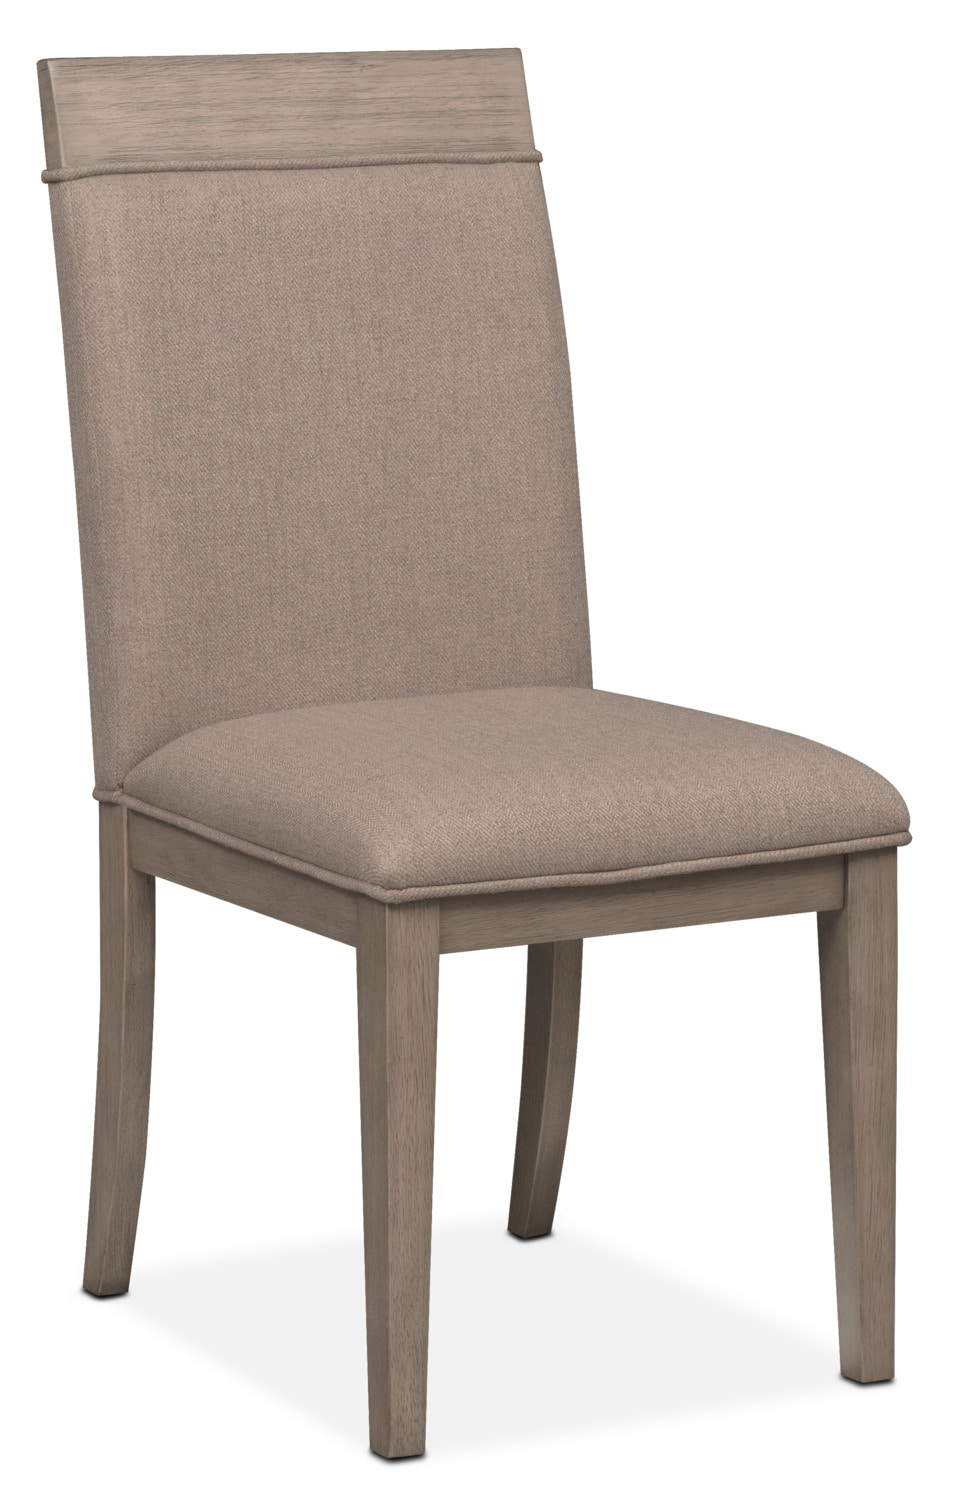 Gavin Side Chair - Graystone